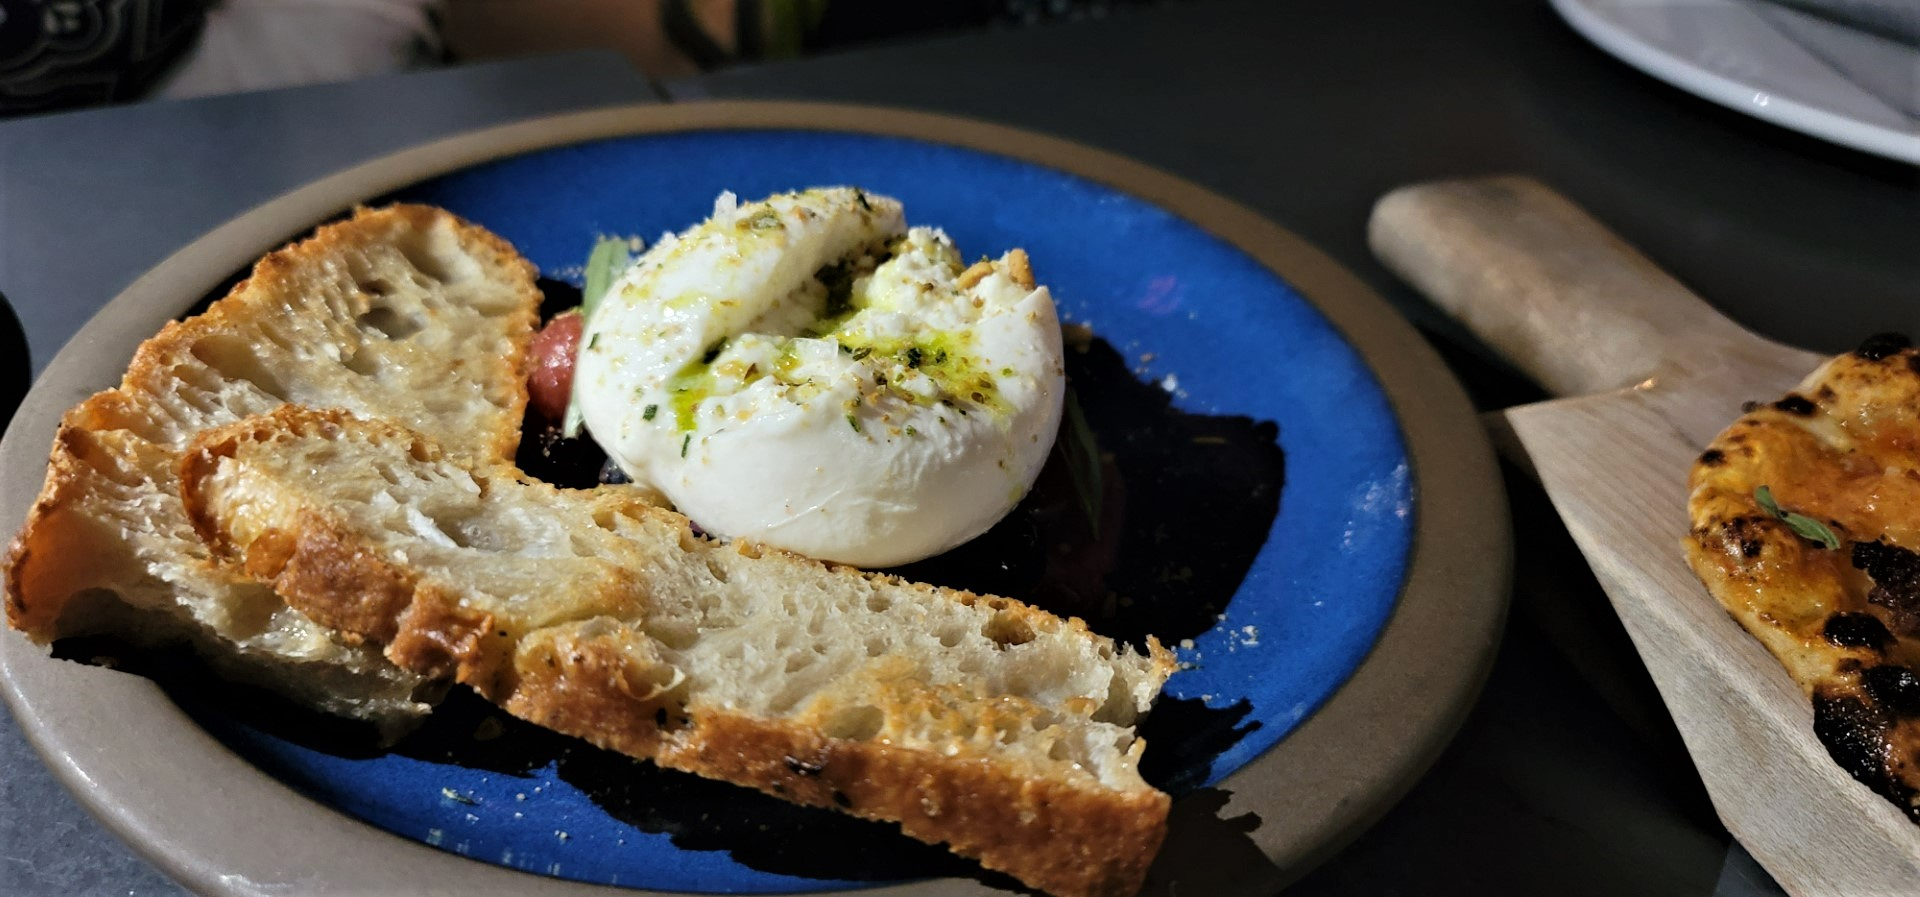 white burratini with bread on blue plate